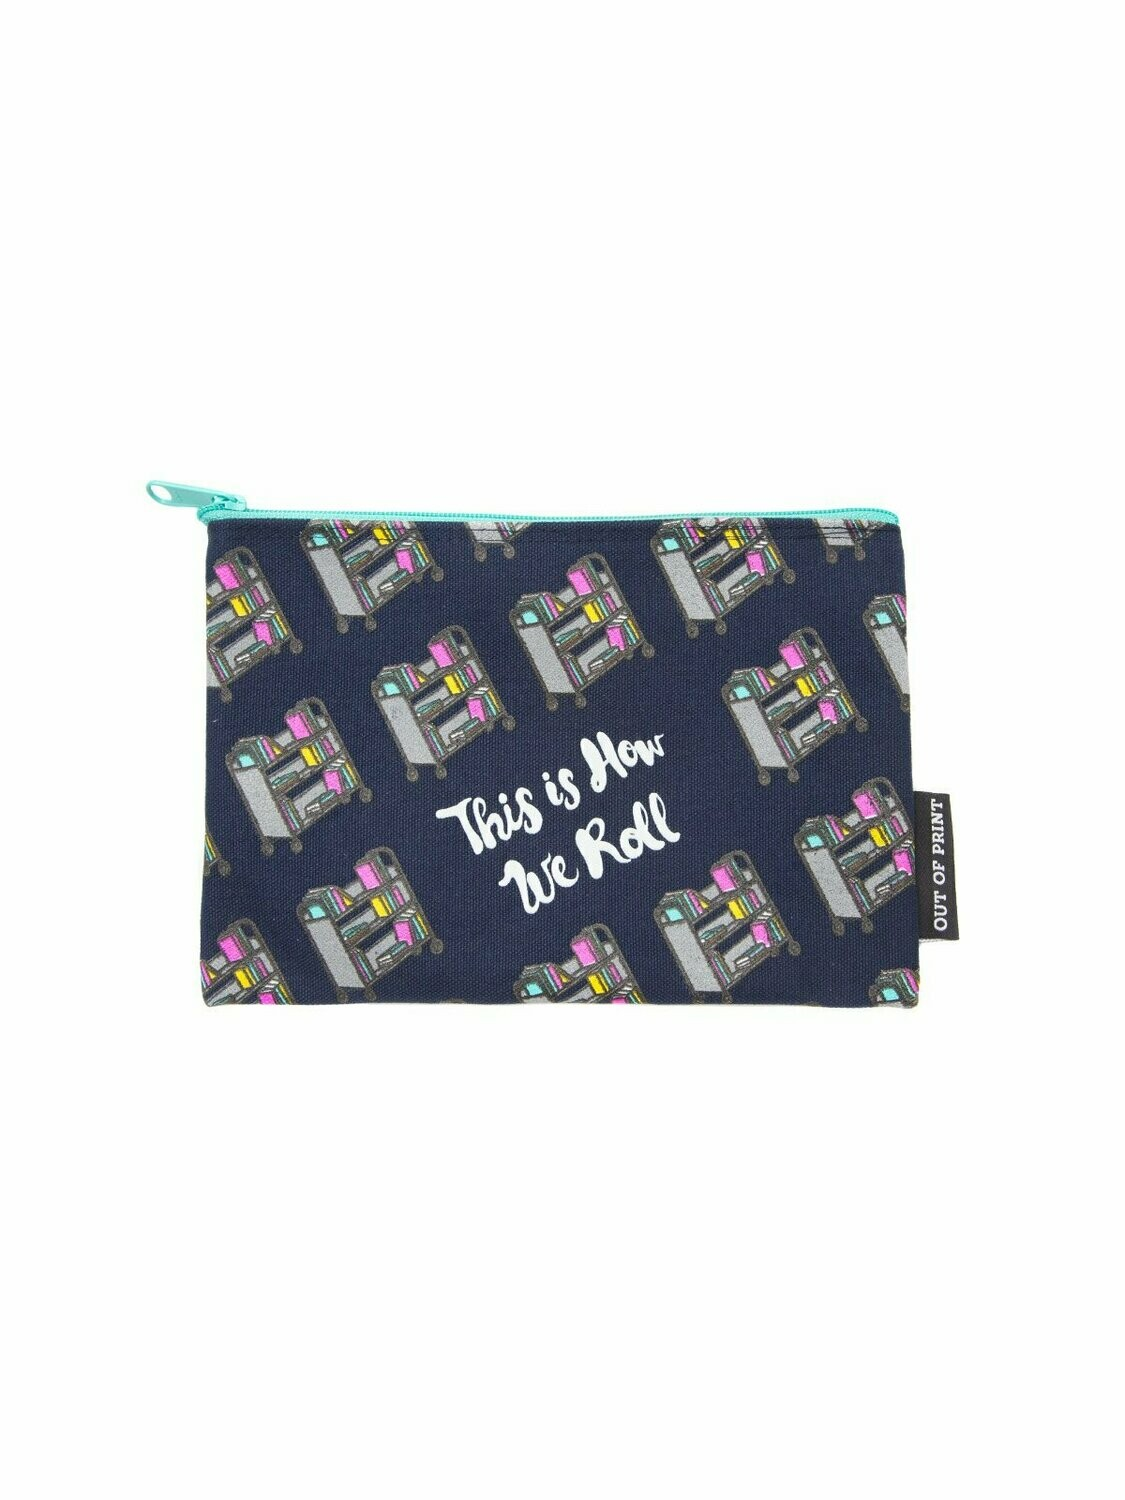 This Is How We Roll canvas pouch